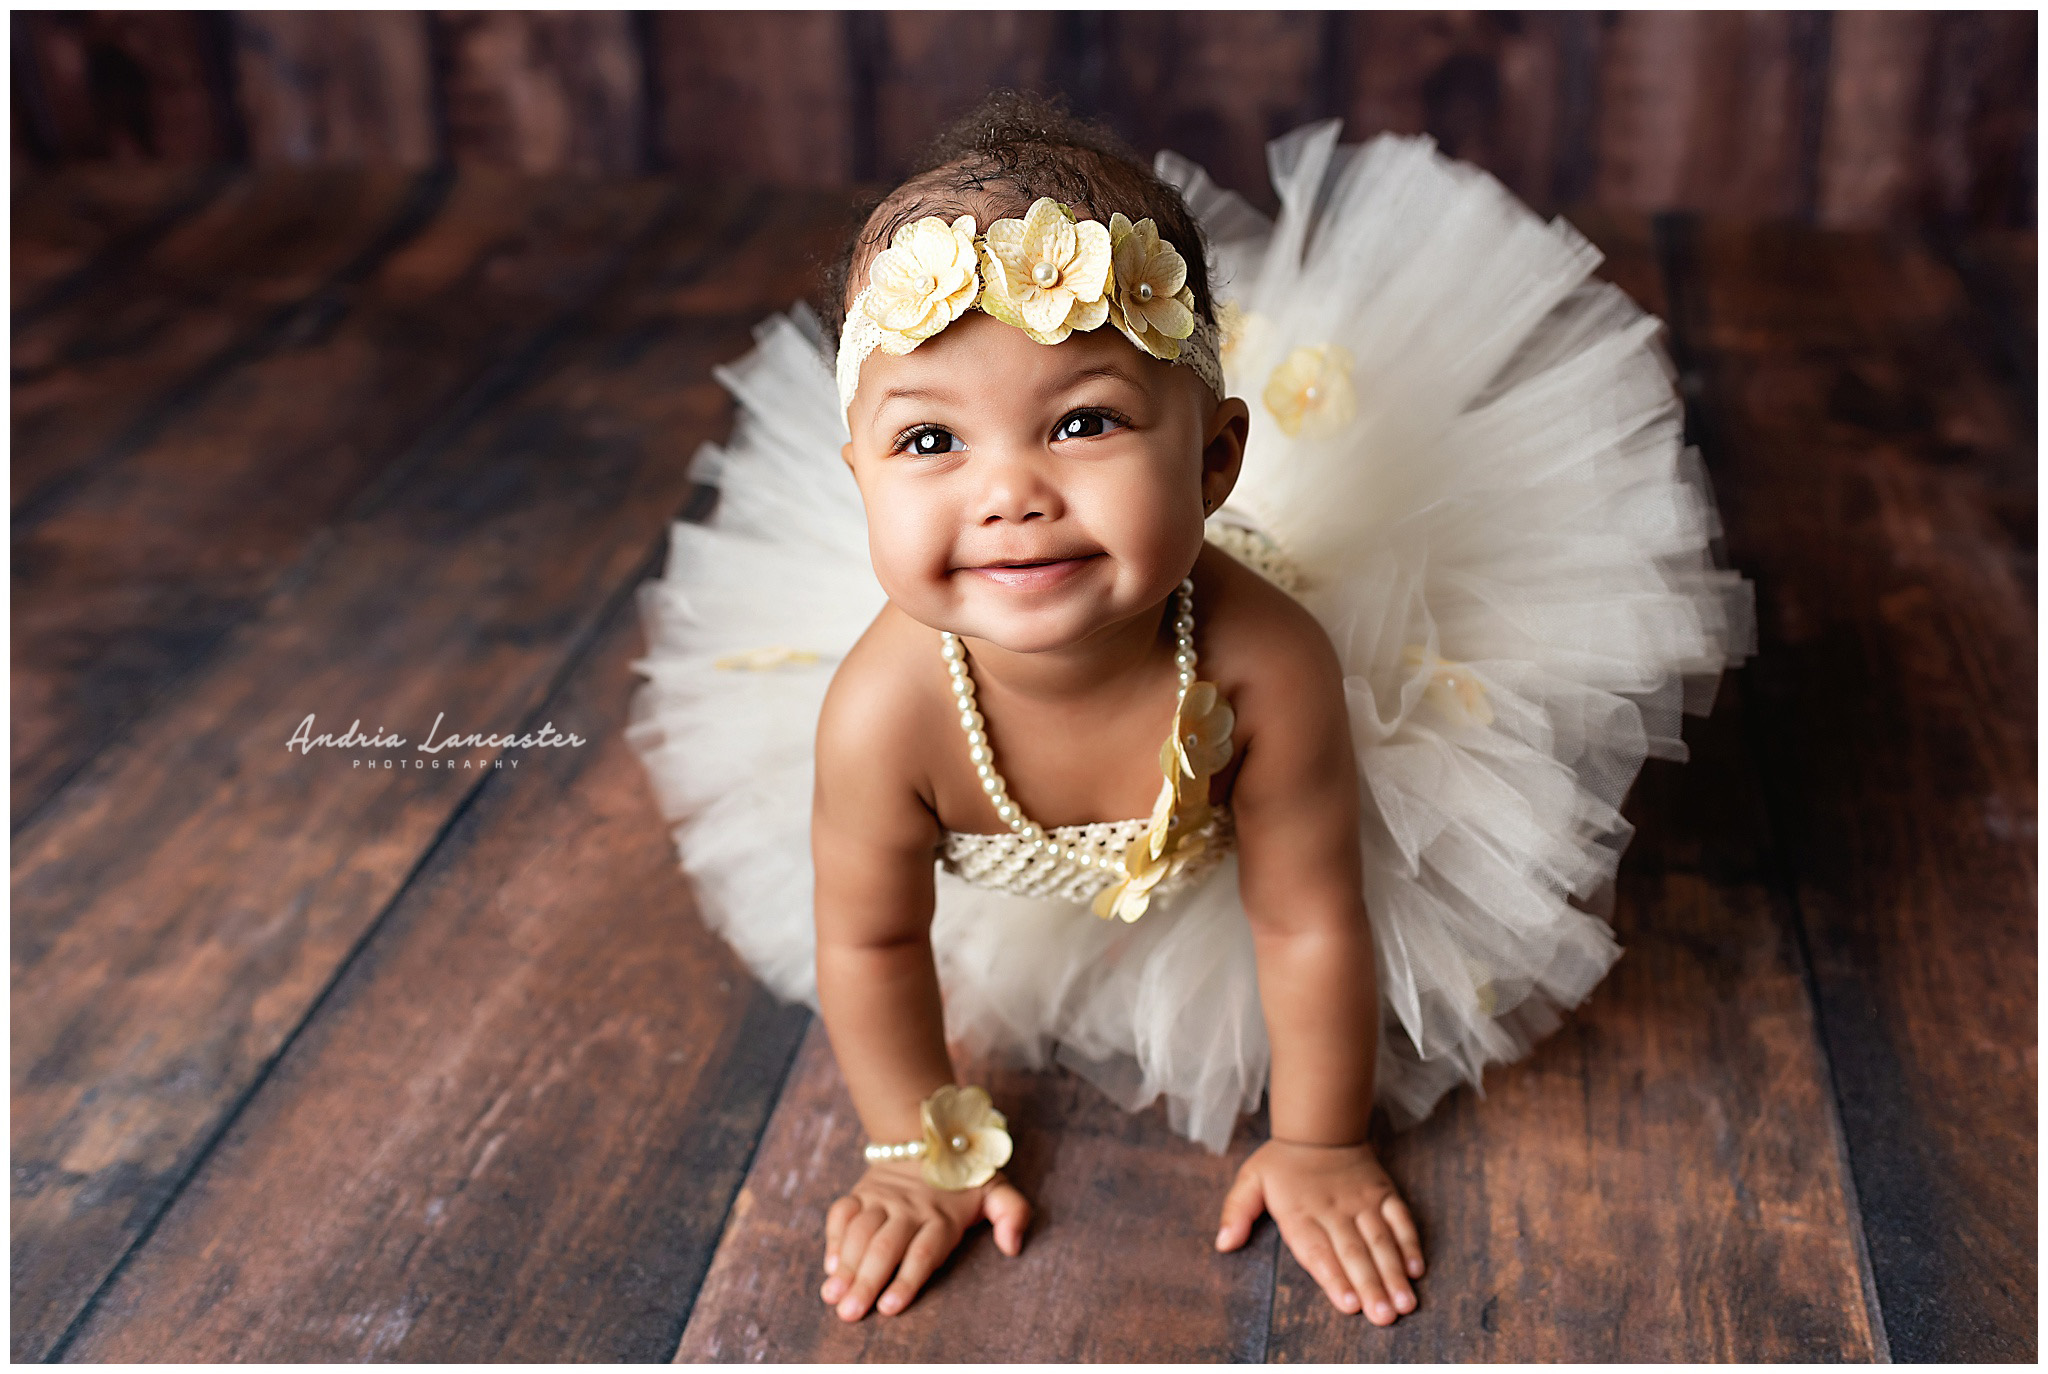 6 month old wearing tutu outfit with flowers looking up